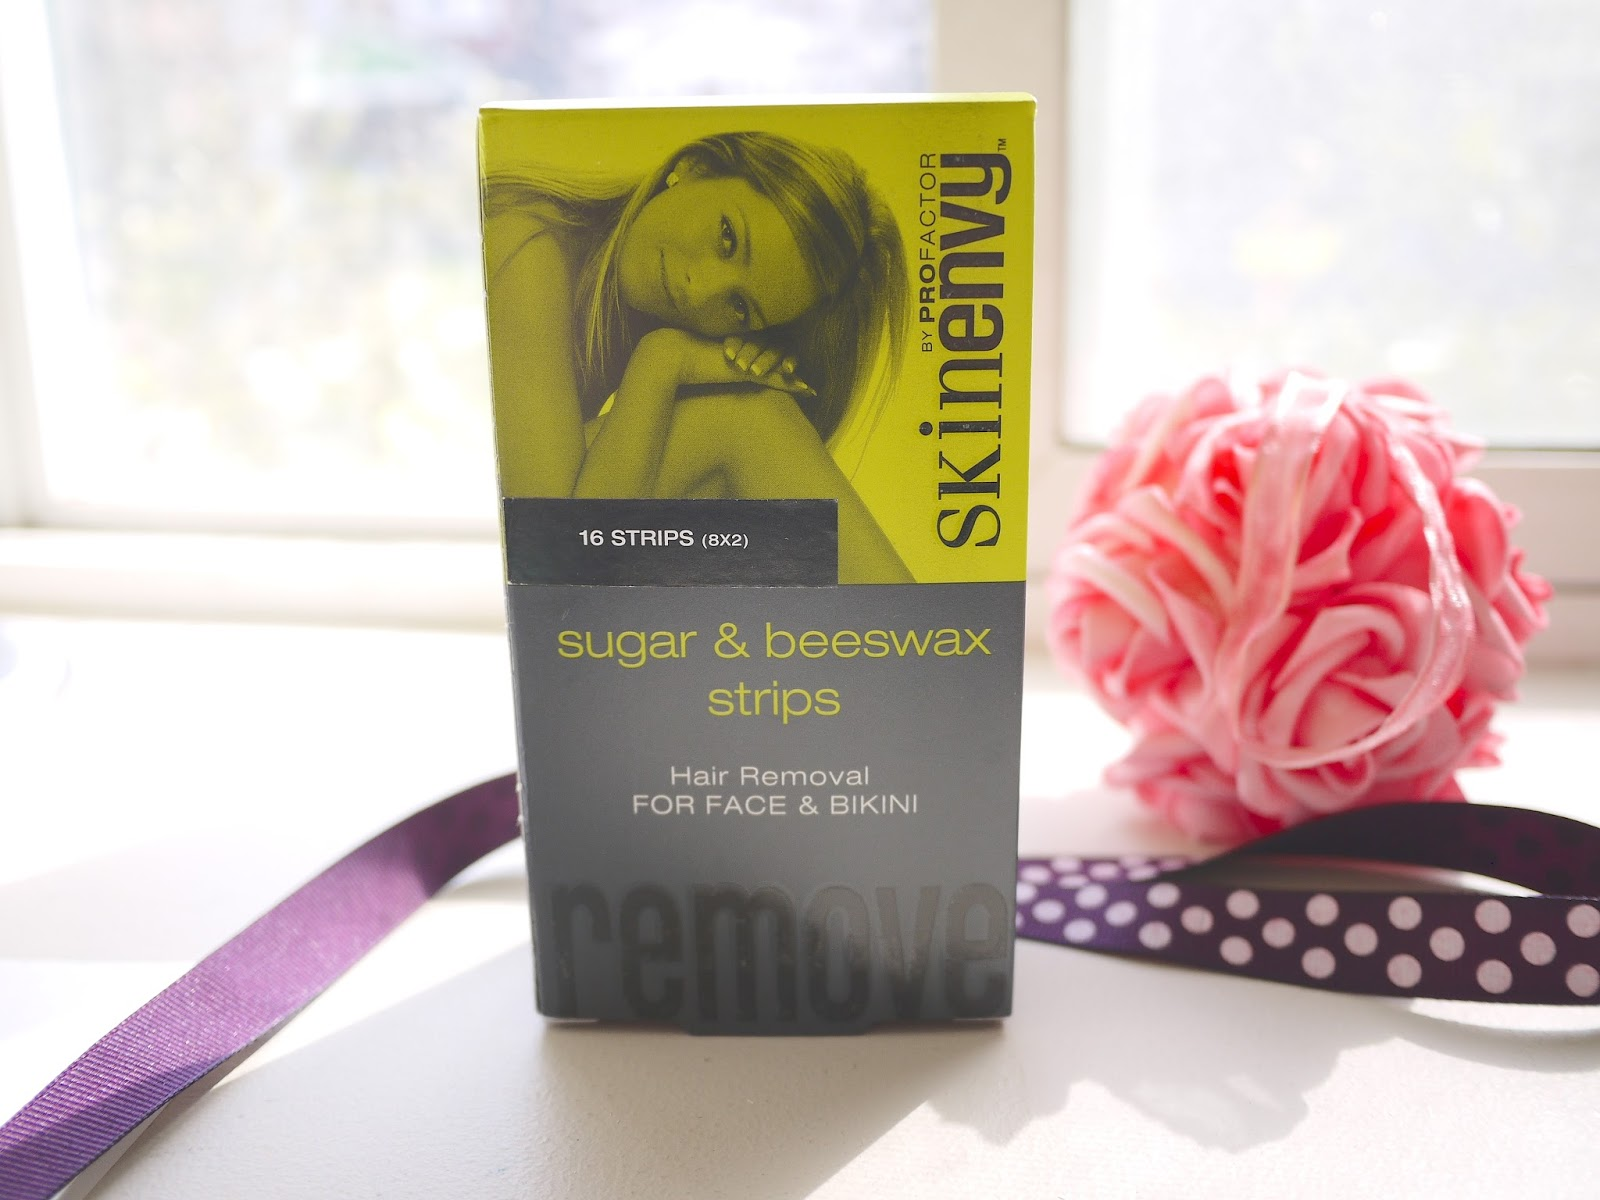 Skinenvy sugar and beeswax face and bikini wax strips review